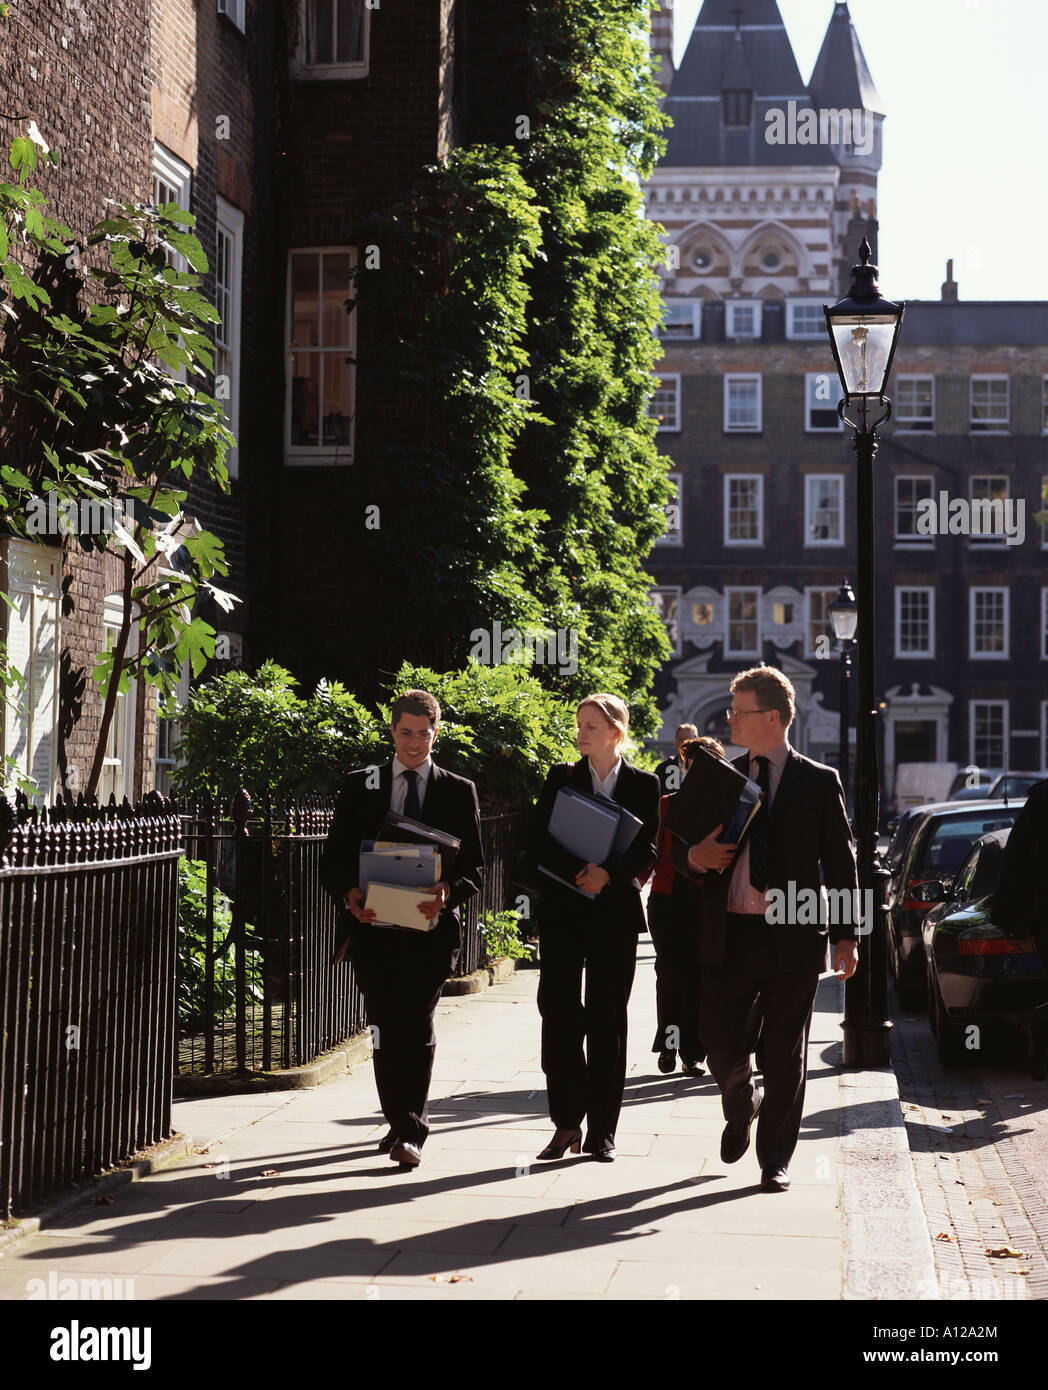 Barristers going to court Lincoln's Inn Fields London - Stock Image